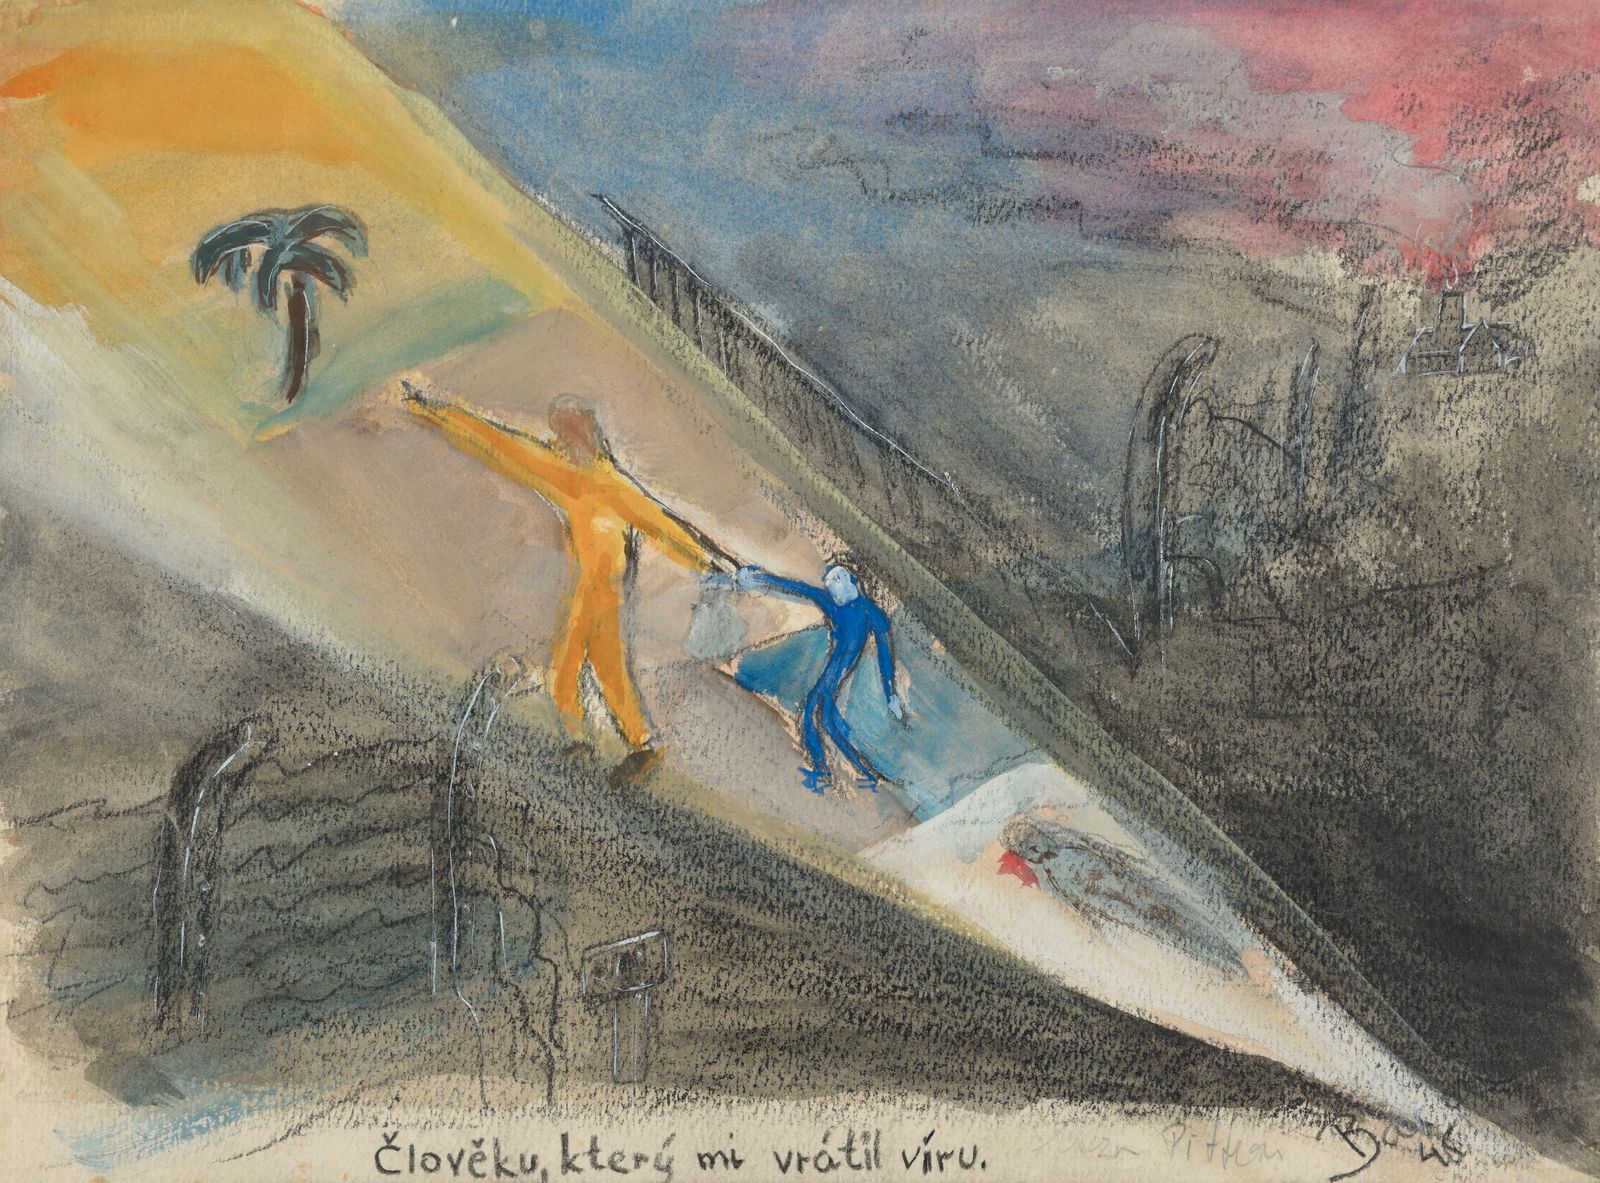 Yehuda Bacon - To the Man who Restored my Belief in Humanity, 1945